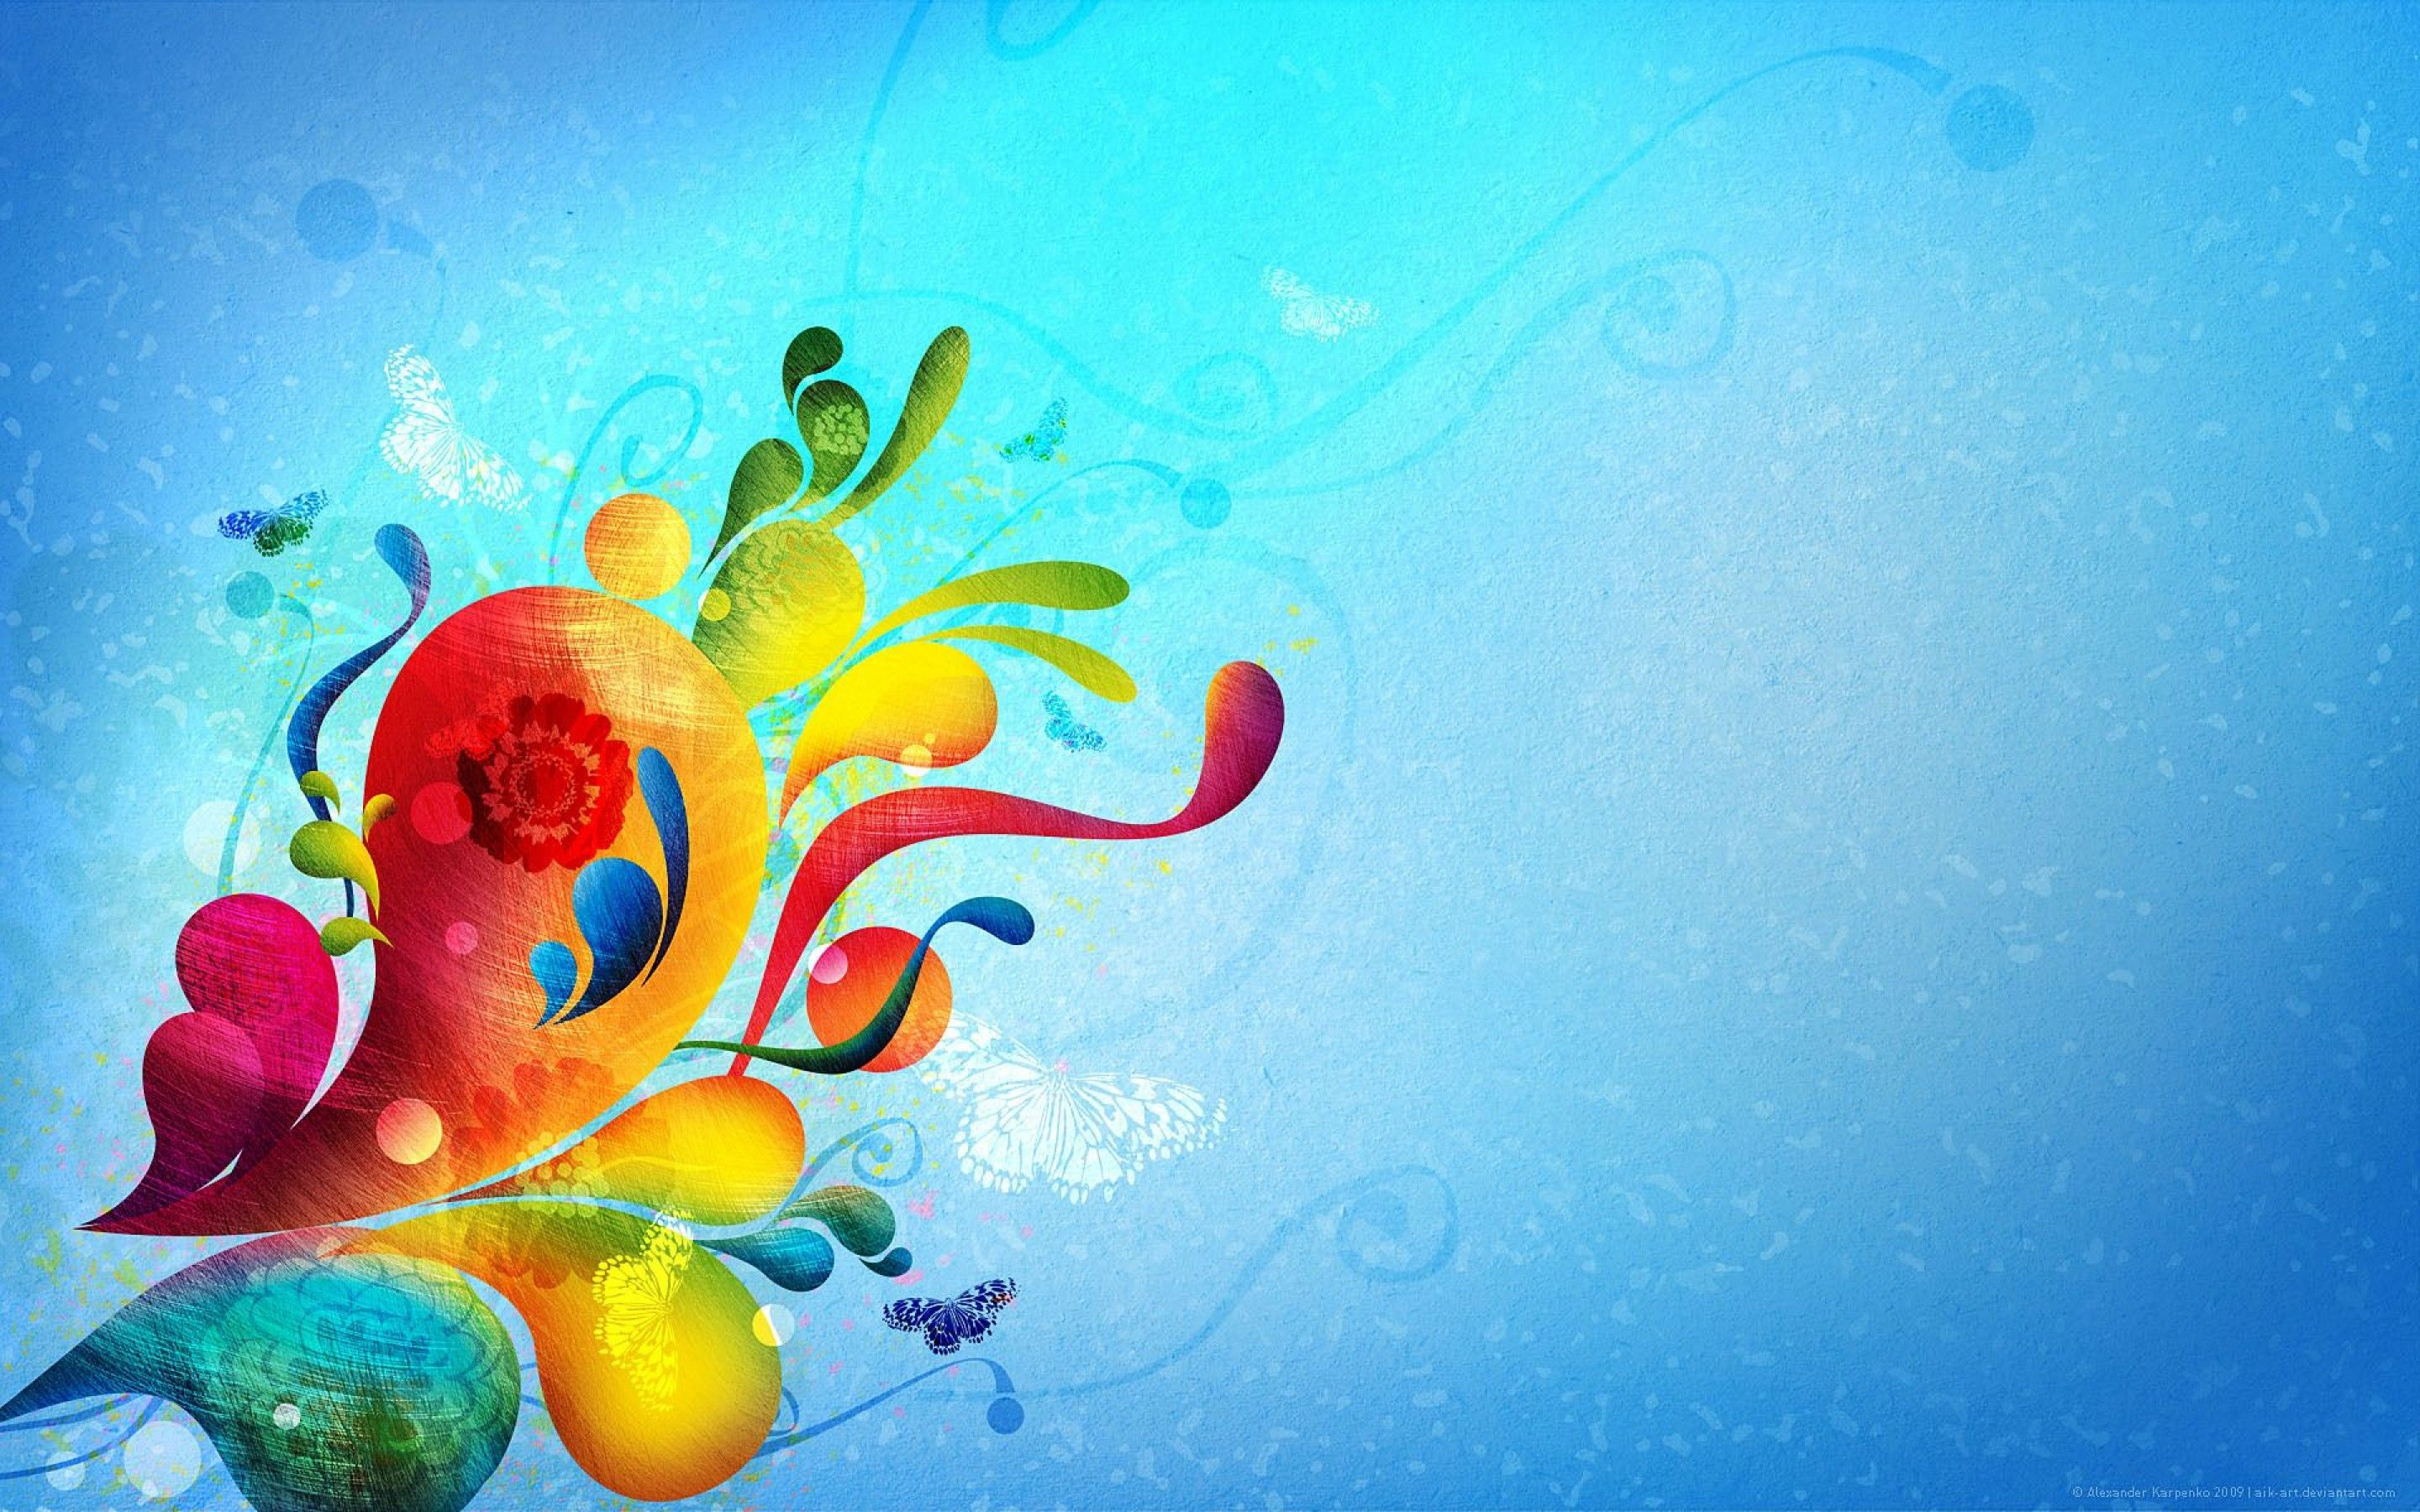 Abstract Art Butterfly Desktop Background Images #82821